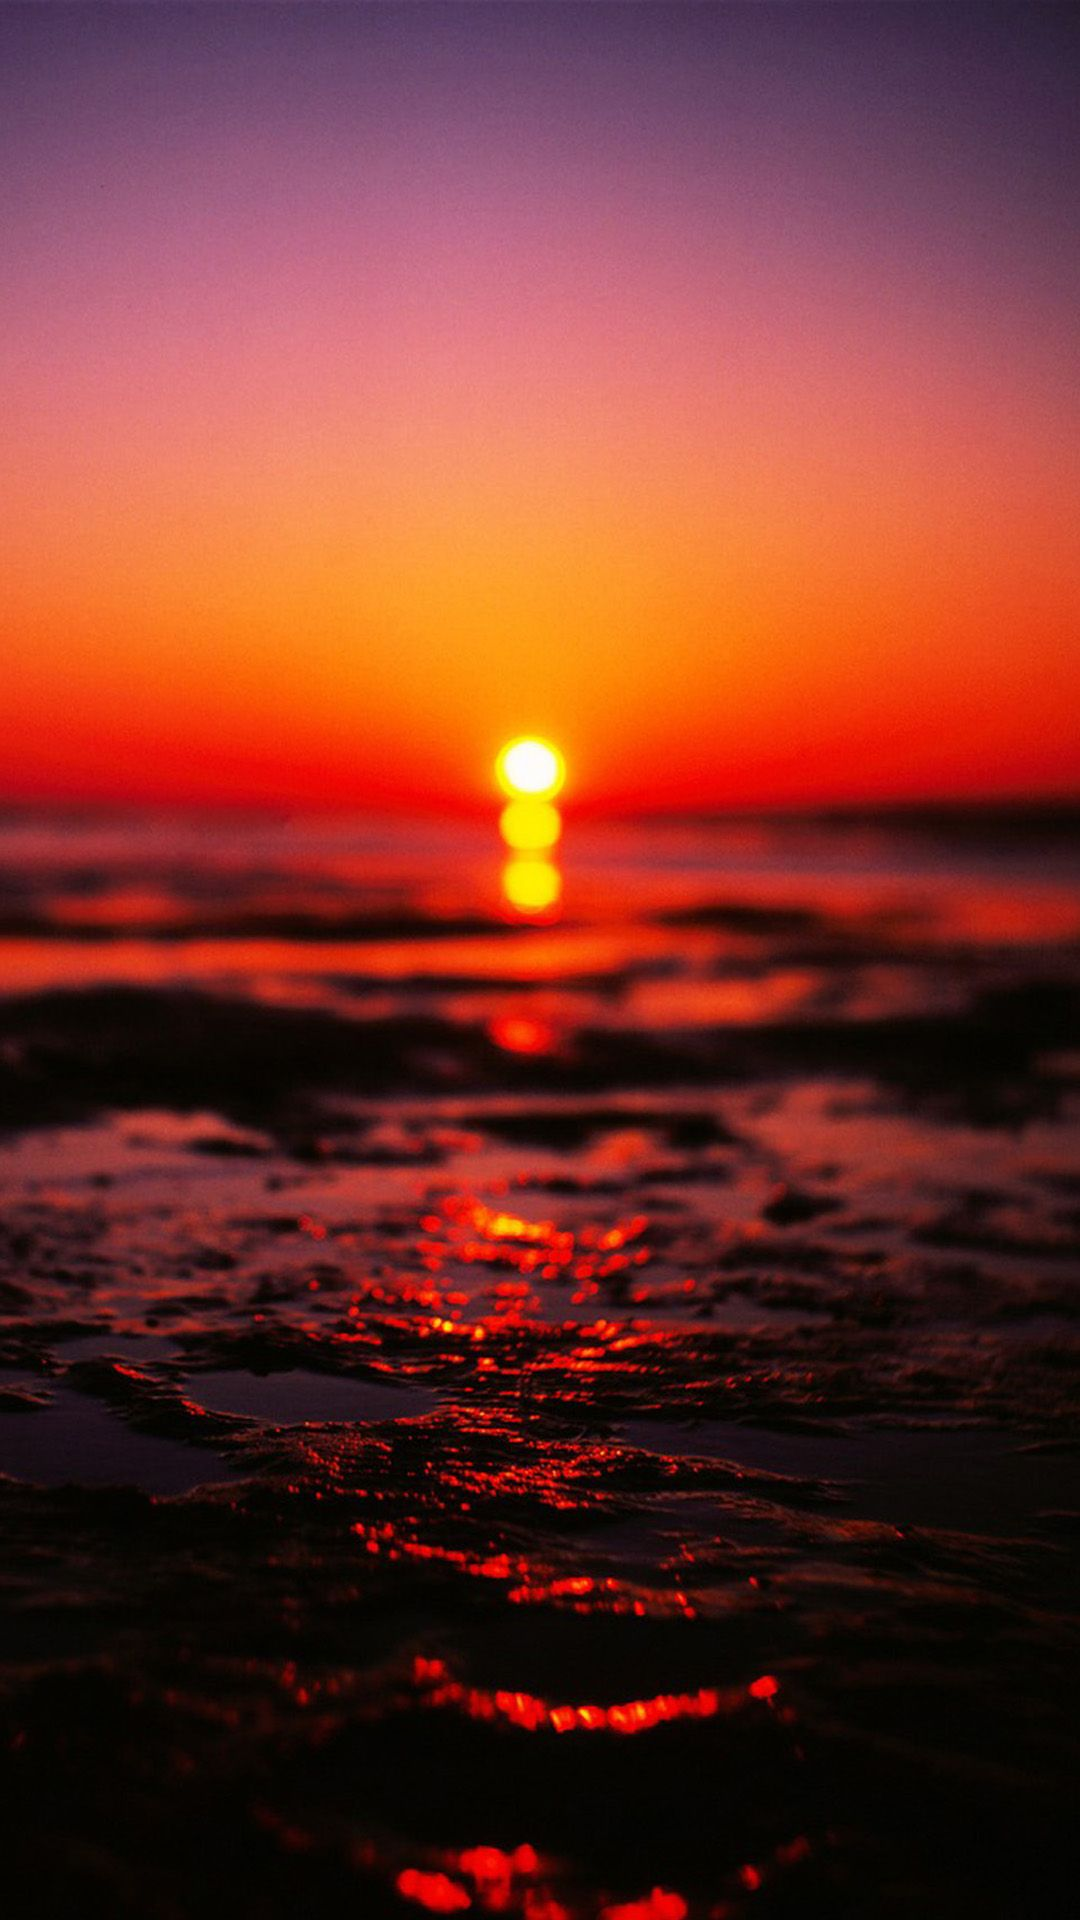 50 Cute And Beautiful Wallpapers For Iphone7 Papier Peint Coucher De Soleil Fond Ecran Nature Beaux Fonds D Ecran